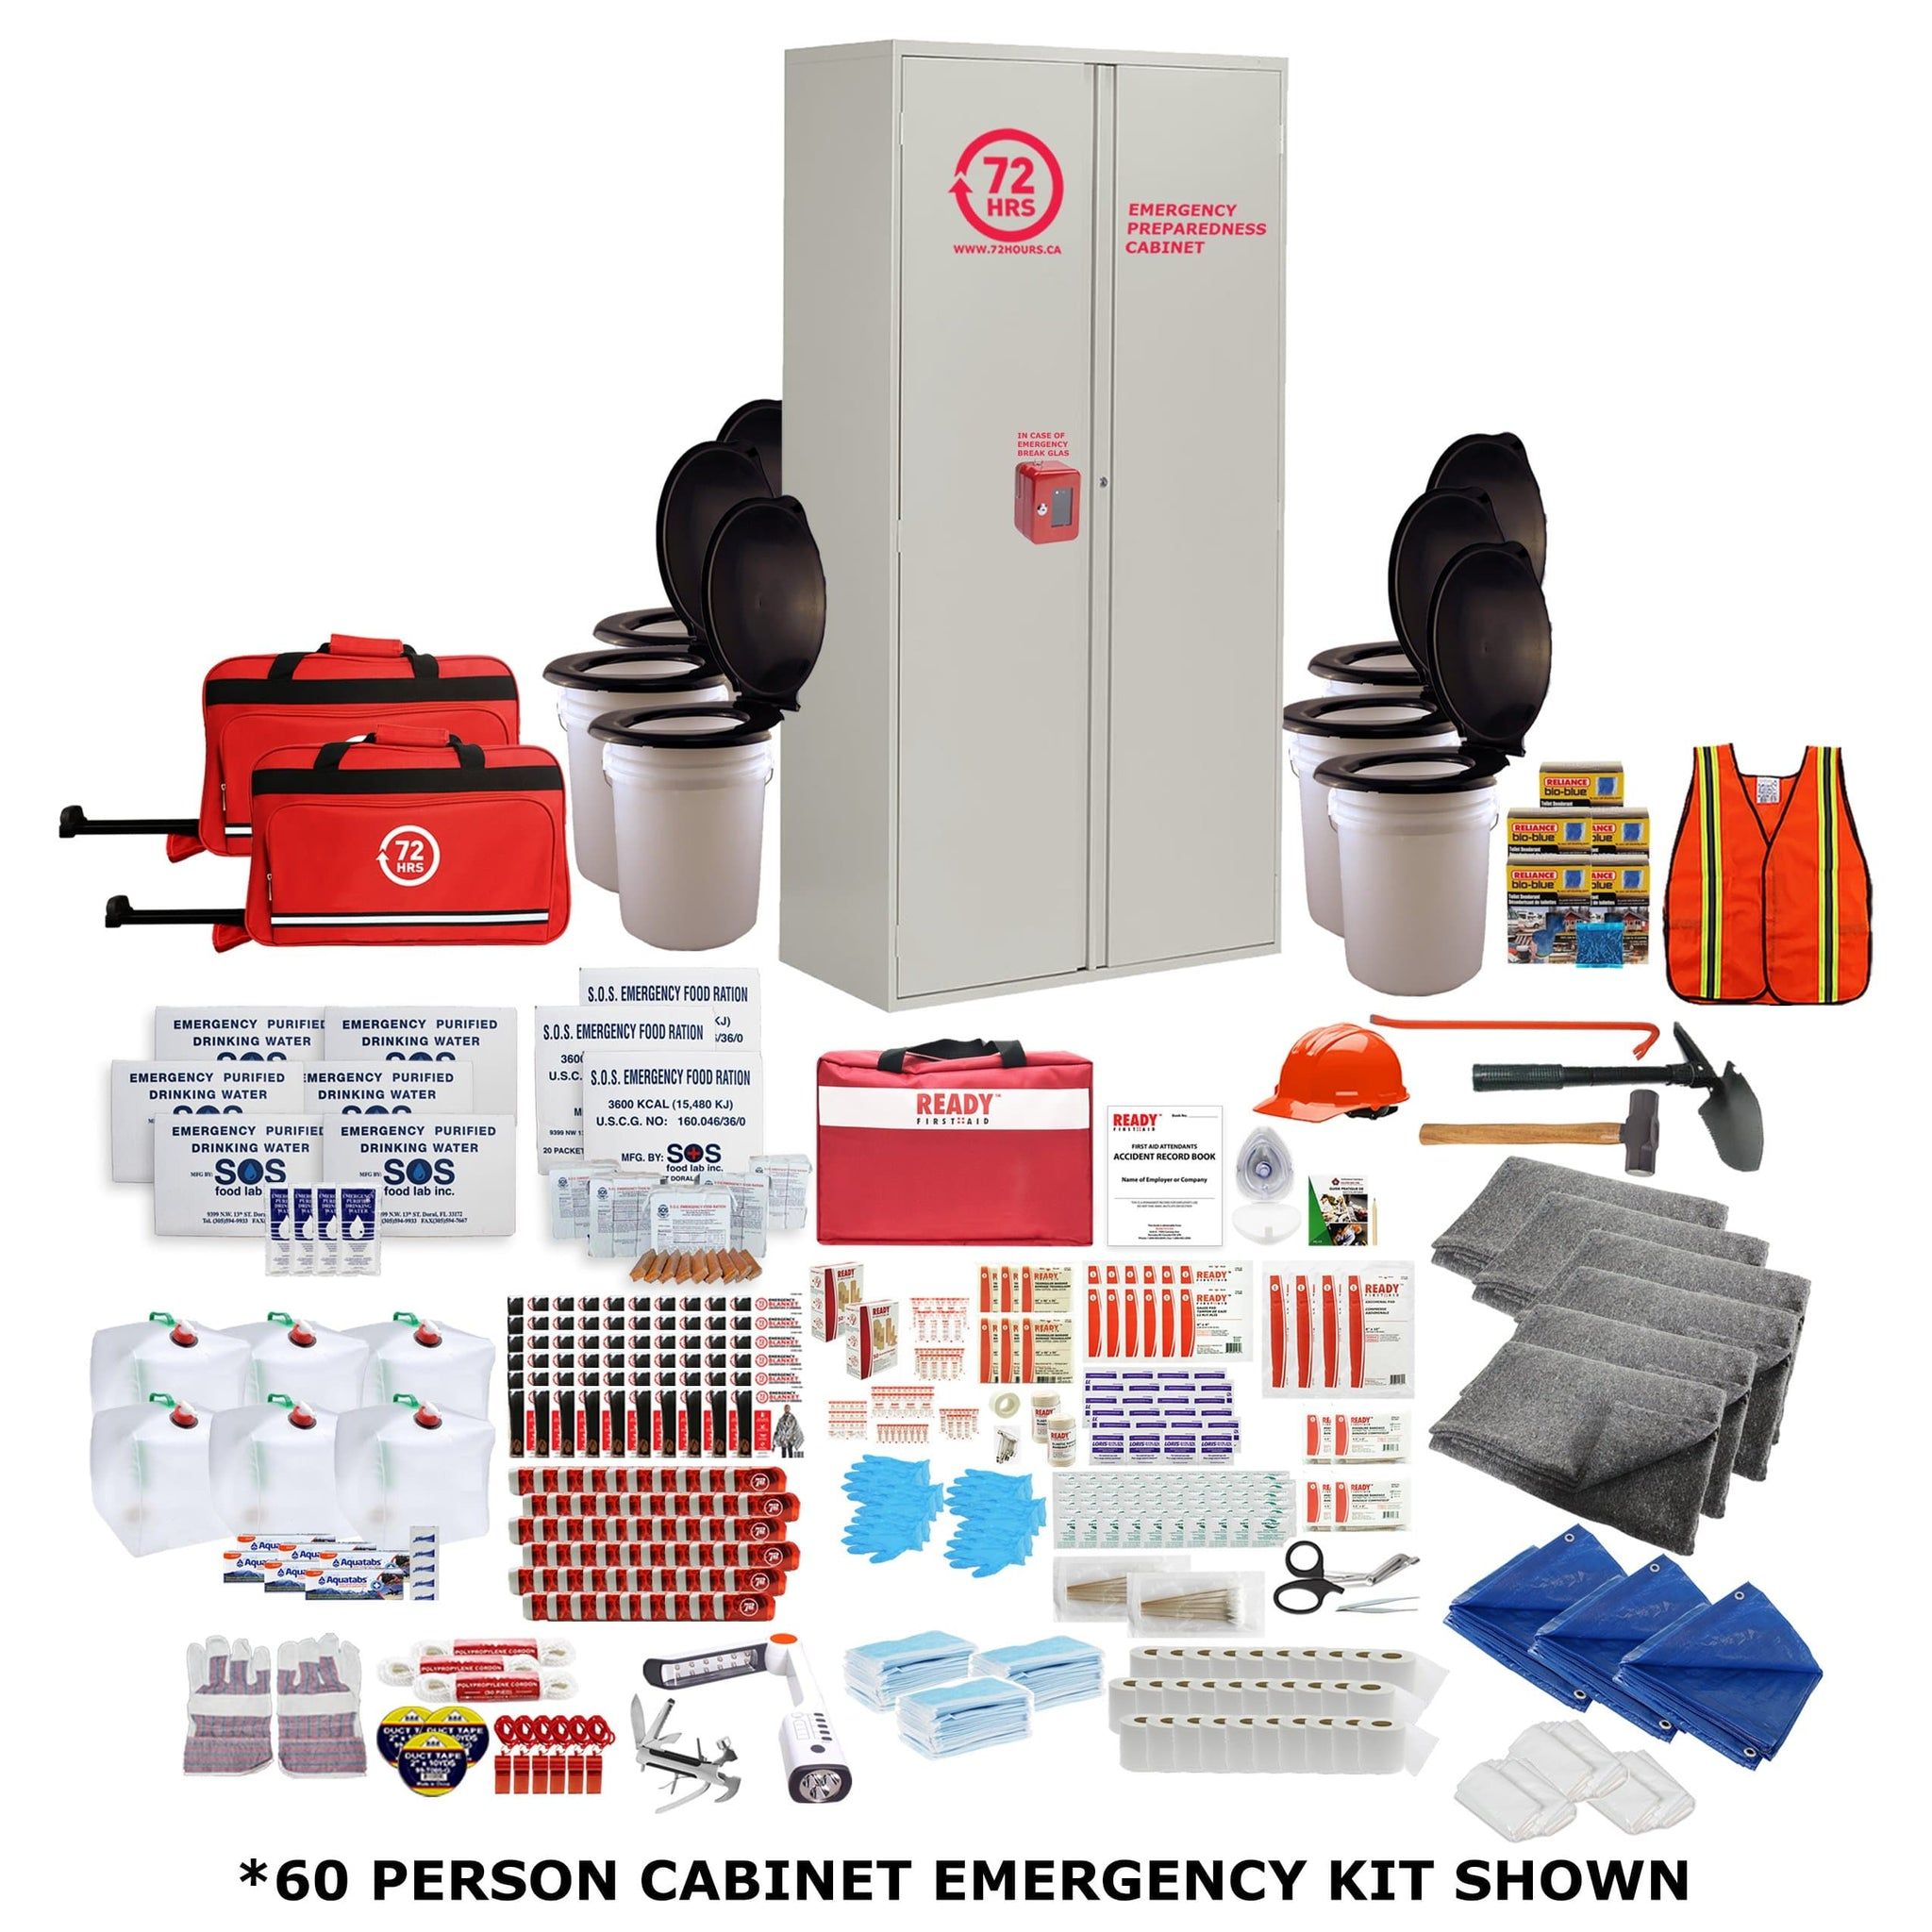 100 Person Emergency Cabinet Kit